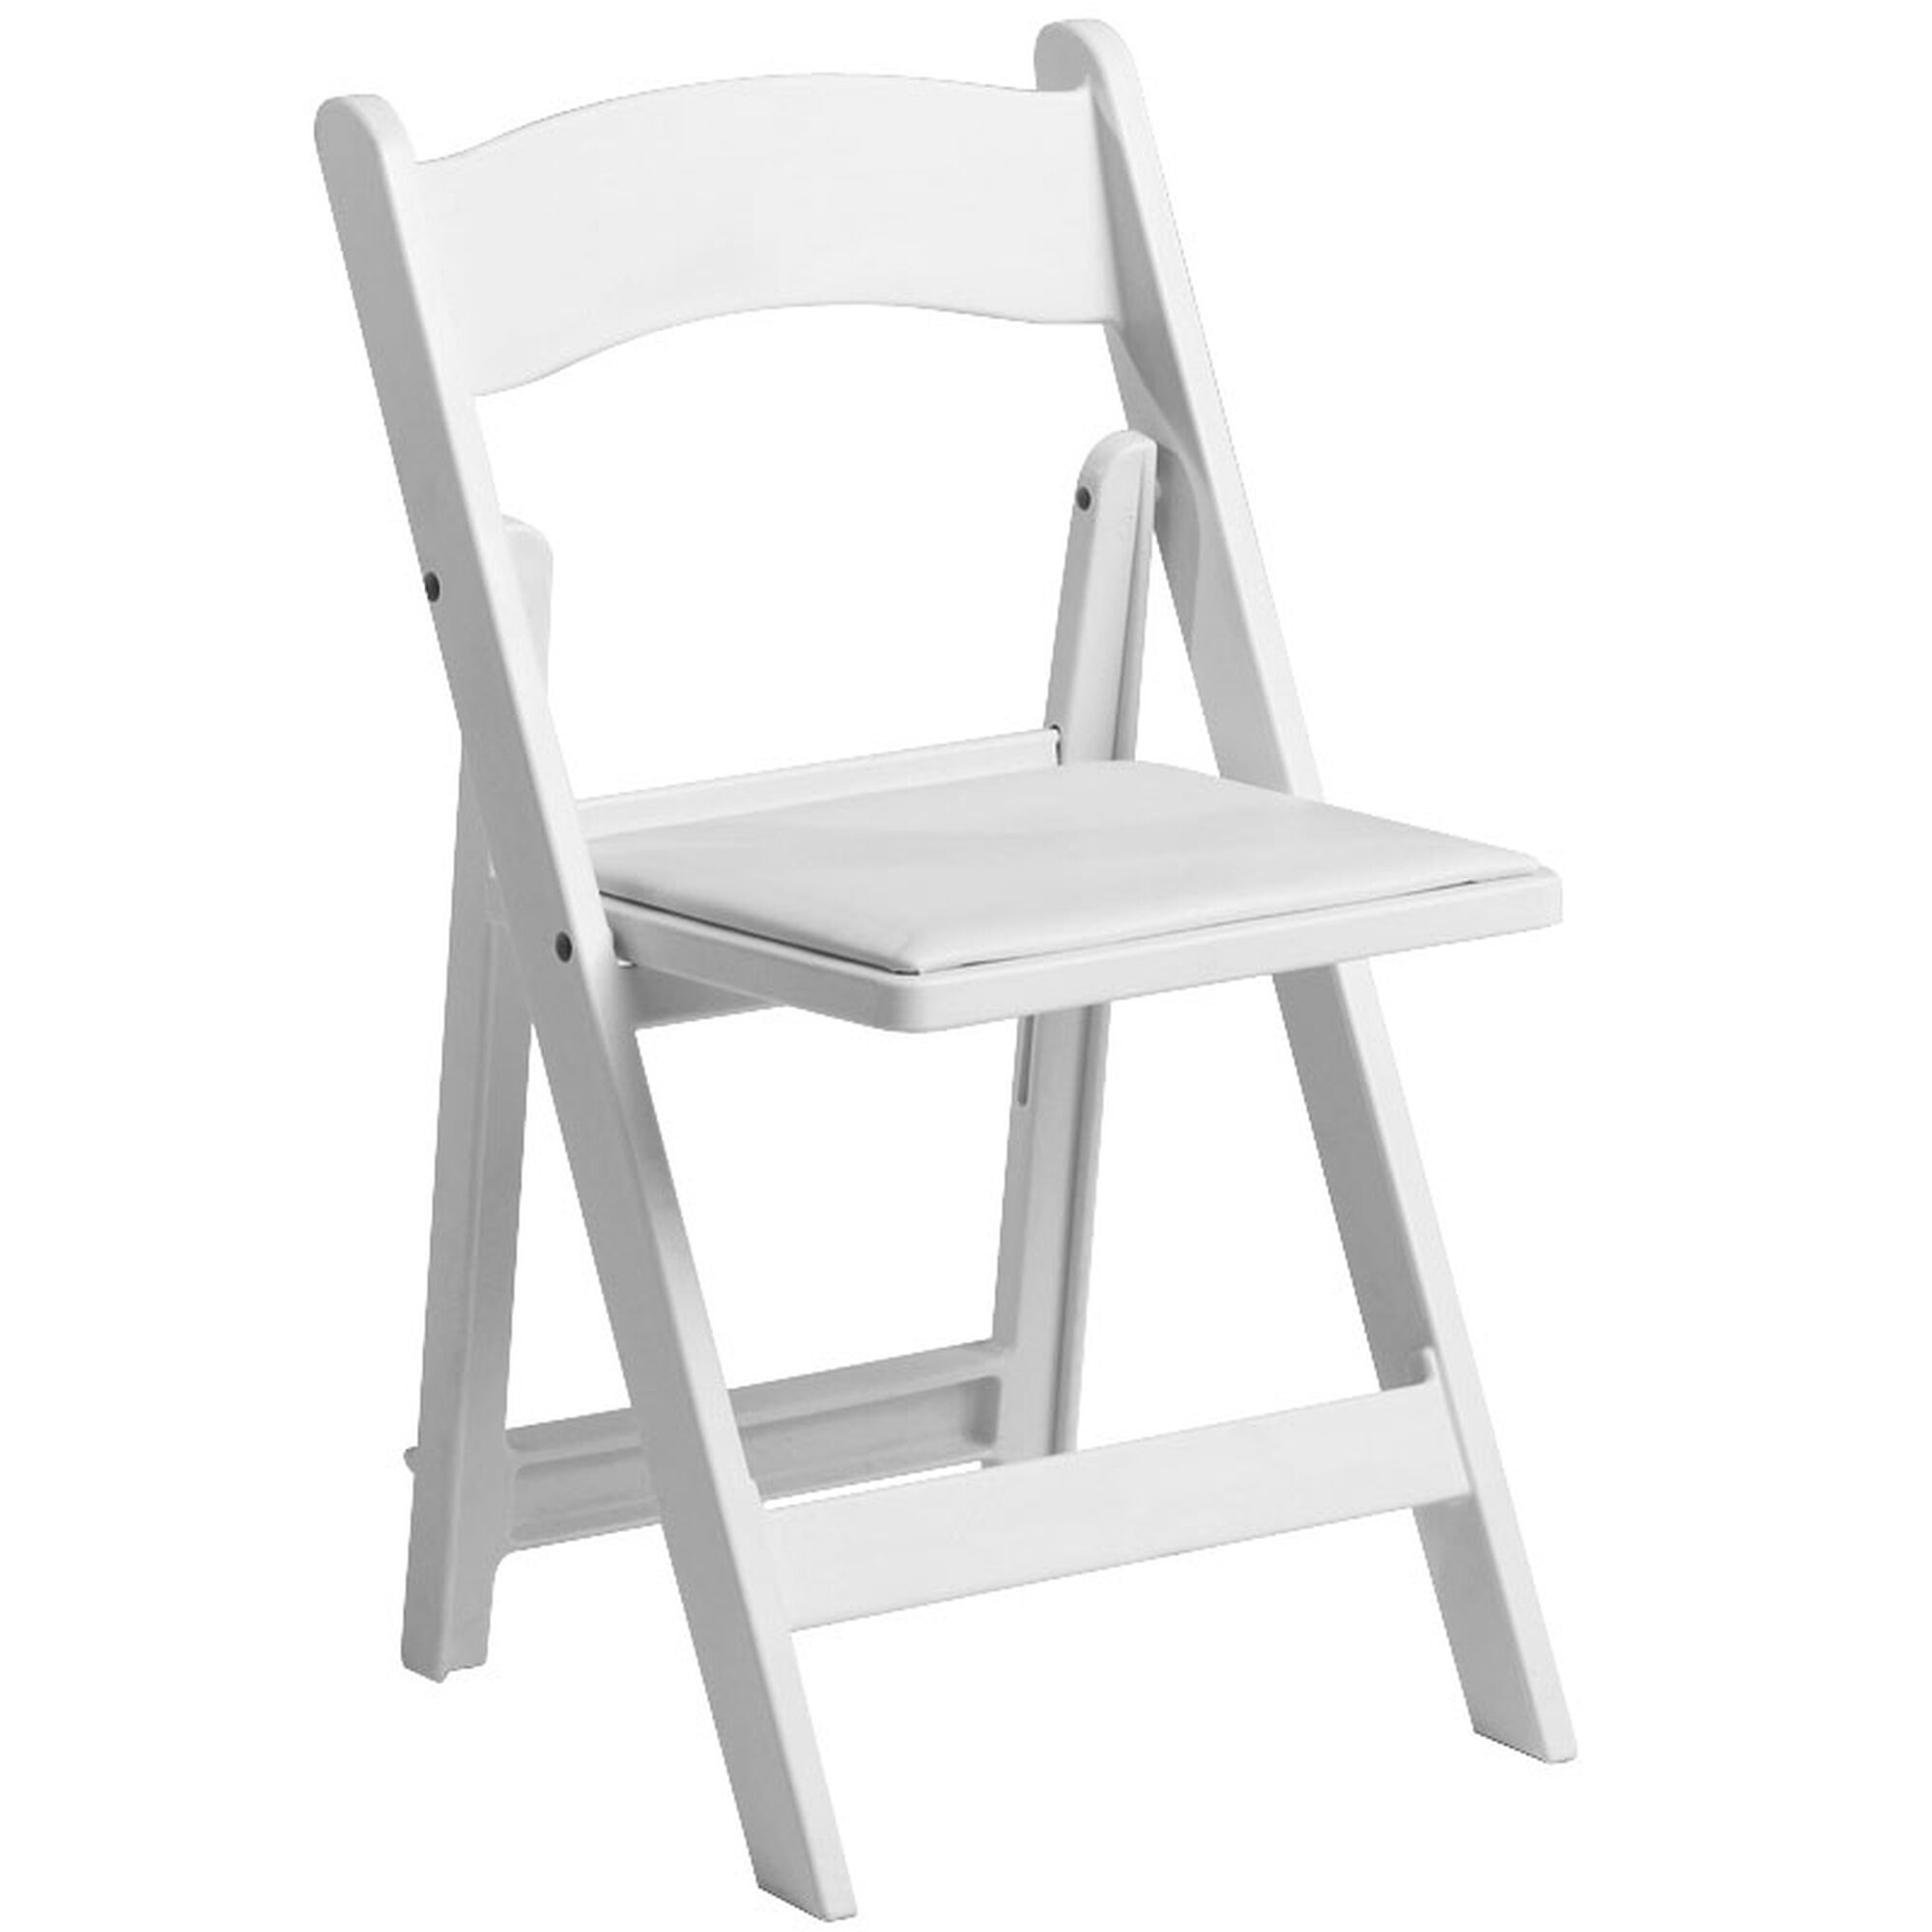 White resin folding chairs - Max White Resin Folding Chair Hover To Zoom